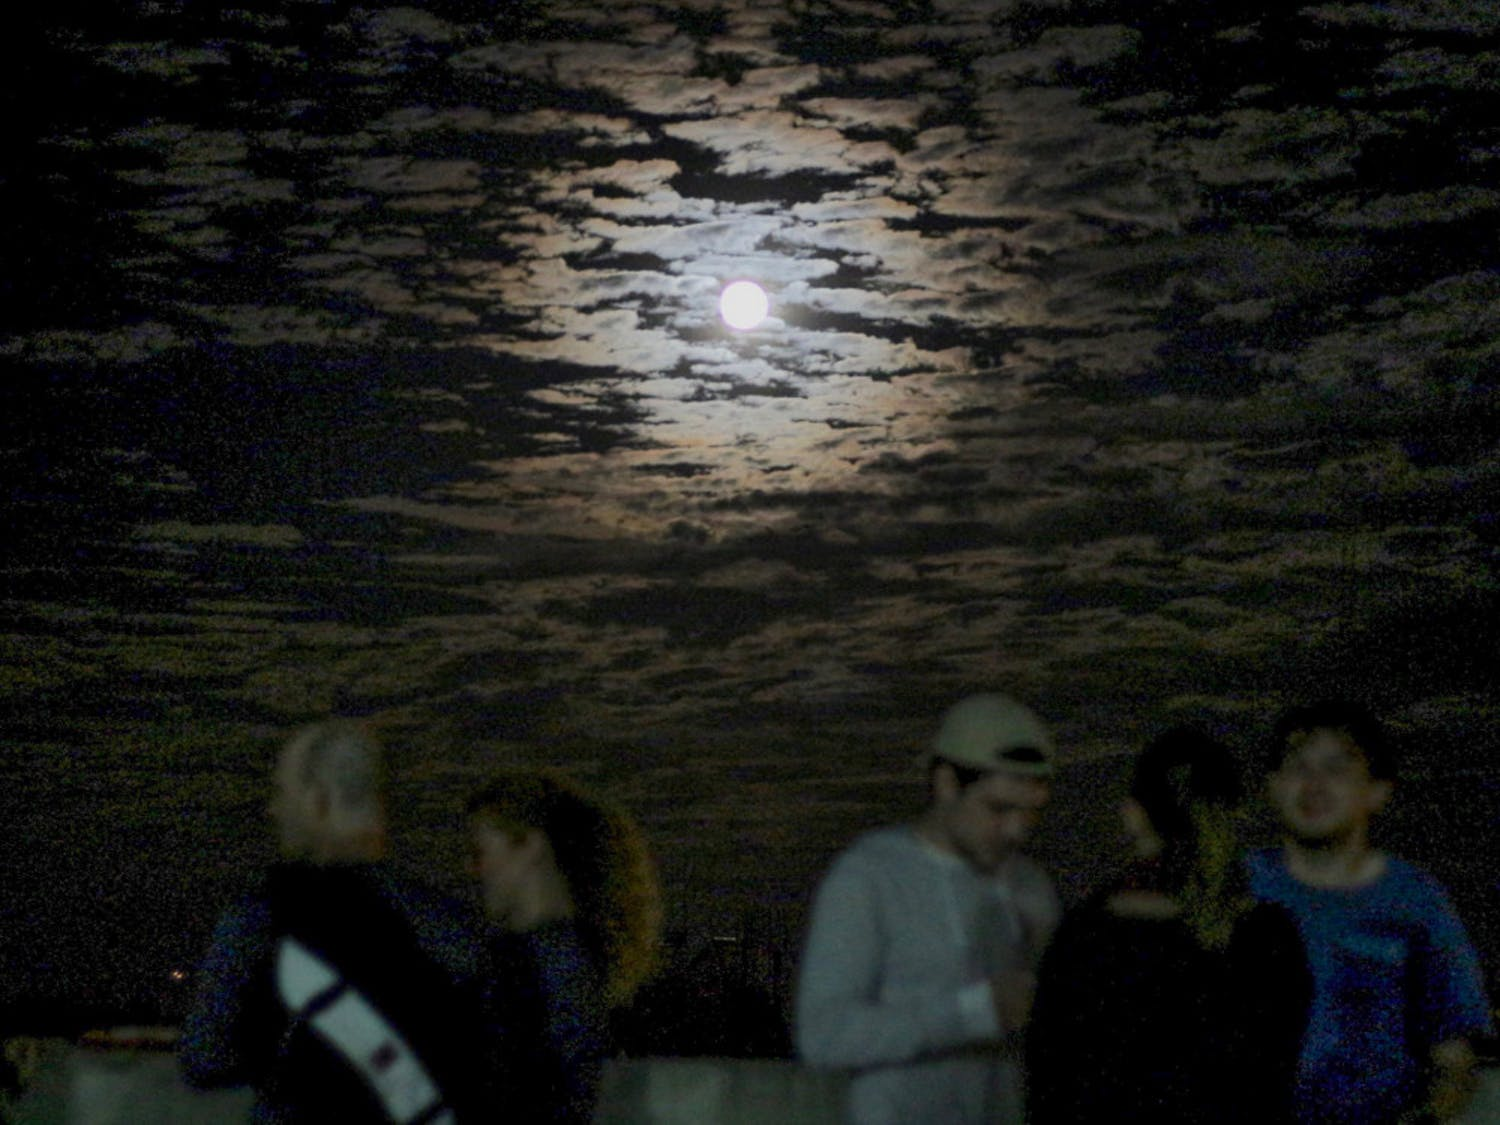 Gainesville residents and UF students watch the supermoon on the roof of a parking garage above Volta Coffee, Tea and Chocolate on Monday night. About 150 people showed up with dogs, roller blades and cameras to see the moon at its brightest and closest location to the Earth until the next supermoon in 2034.